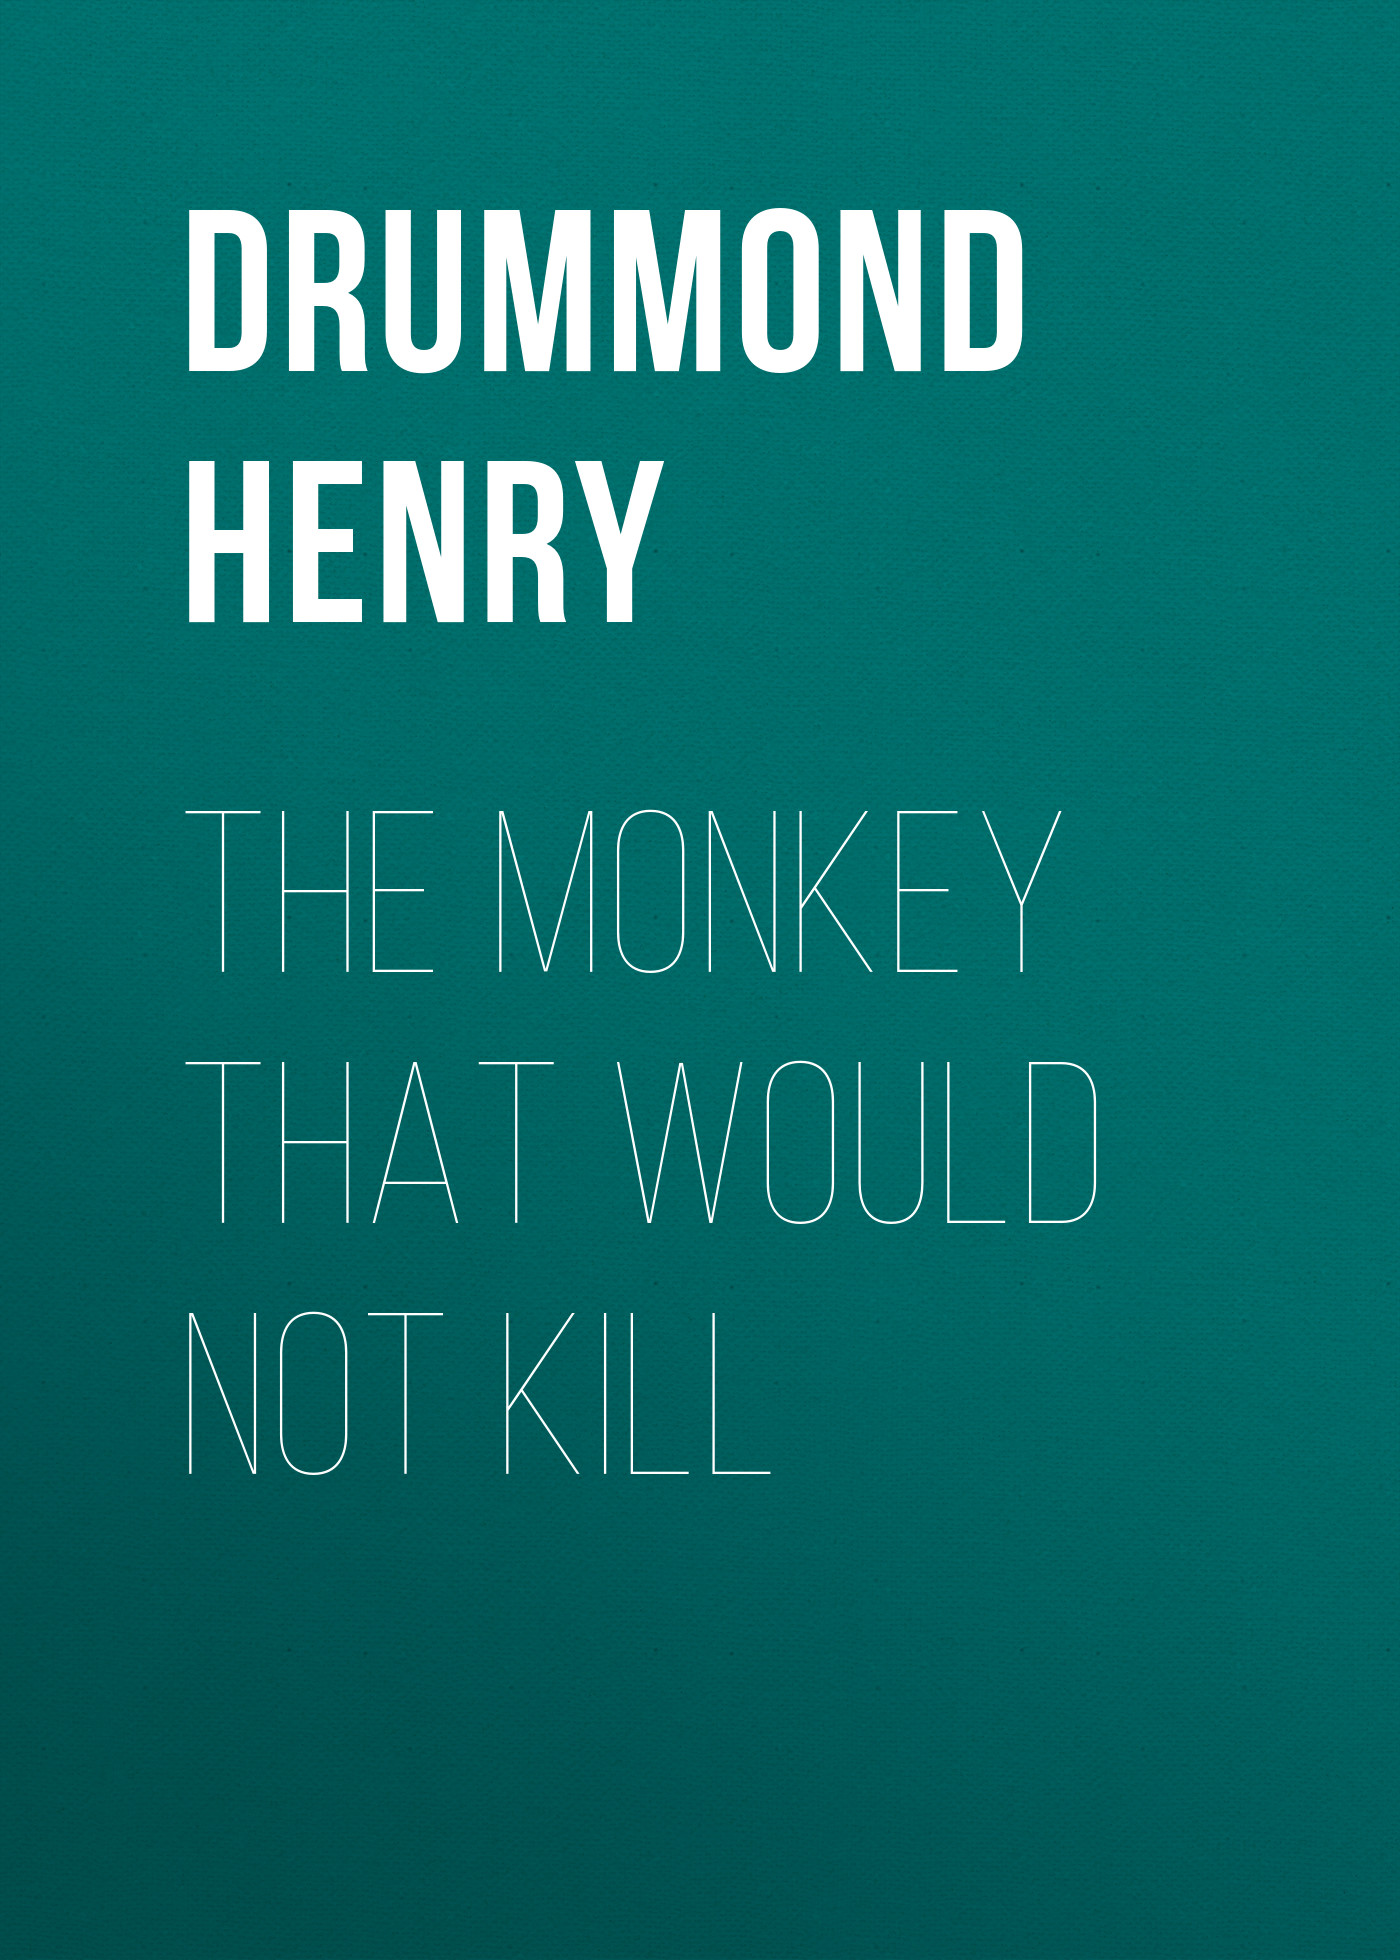 лучшая цена Drummond Henry The Monkey That Would Not Kill